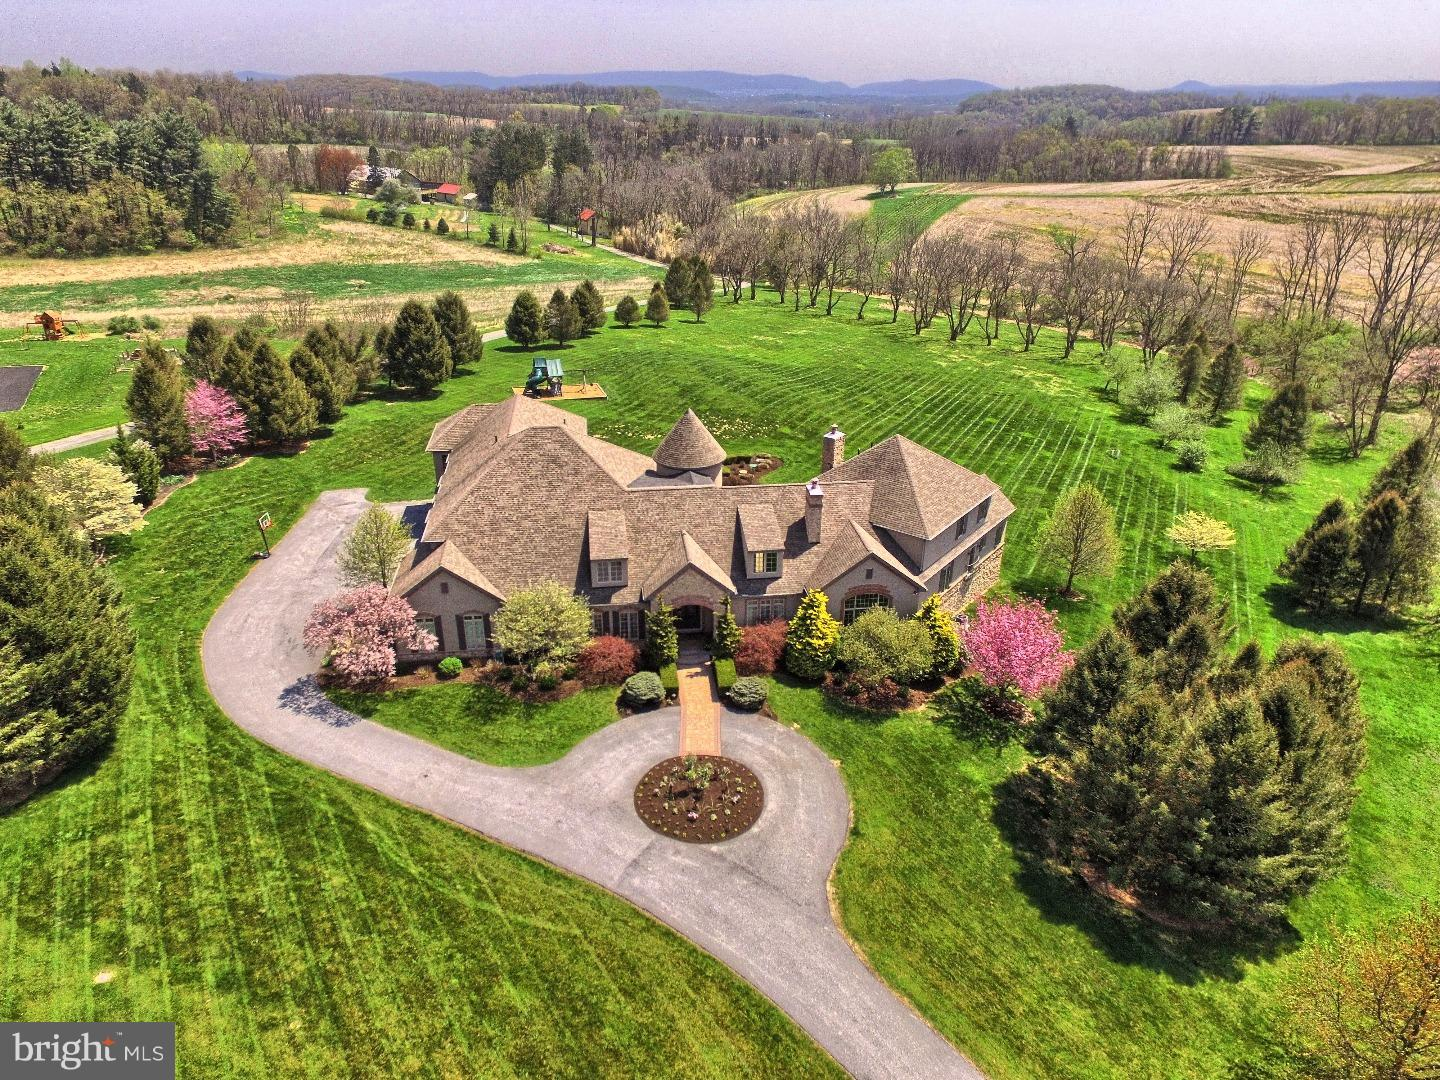 13 SUMMER HILL DRIVE, SINKING SPRING, PA 19608